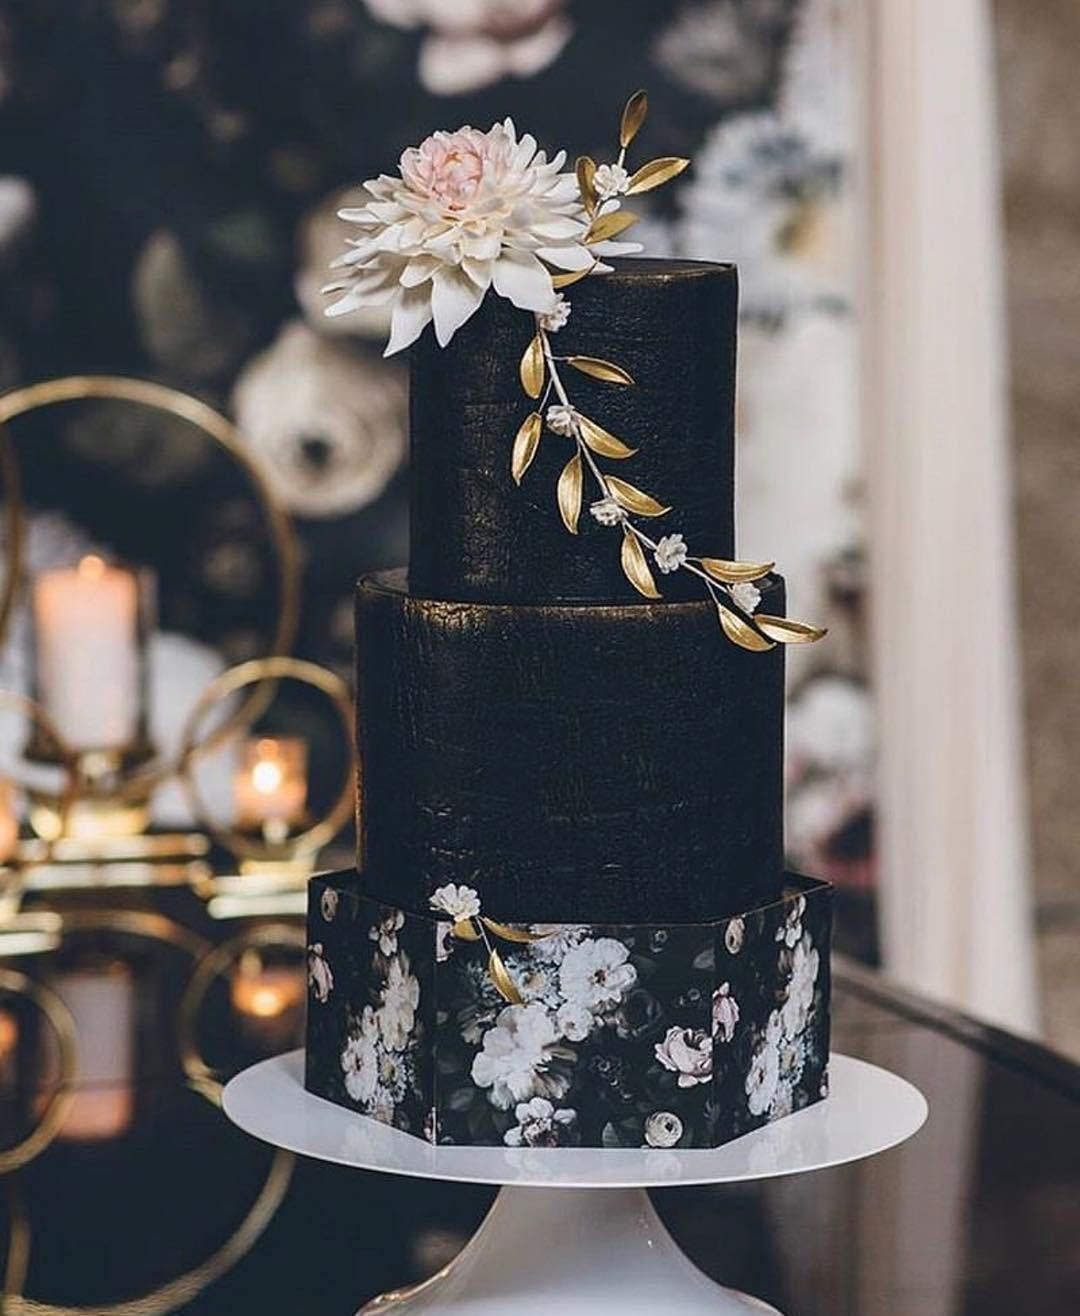 Black moody and rustic wedding cake ,wedding cakes #weddingcake #cake